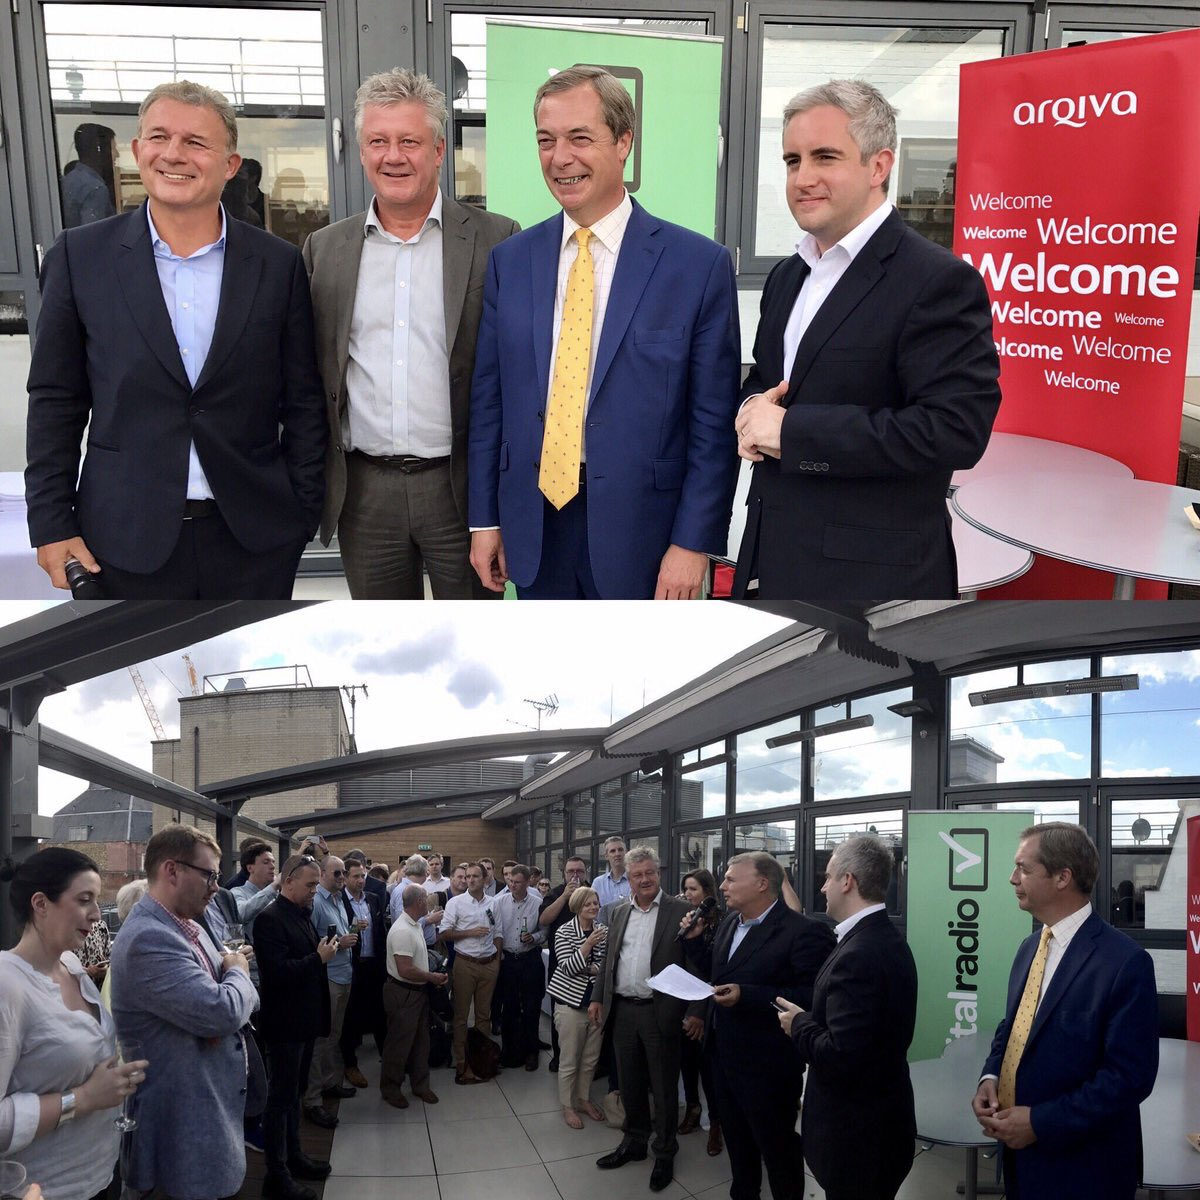 With @JamesRea, @global and @arqiva speaking about the exciting future of #DigitalRadio earlier. https://t.co/b6jKt5moKt